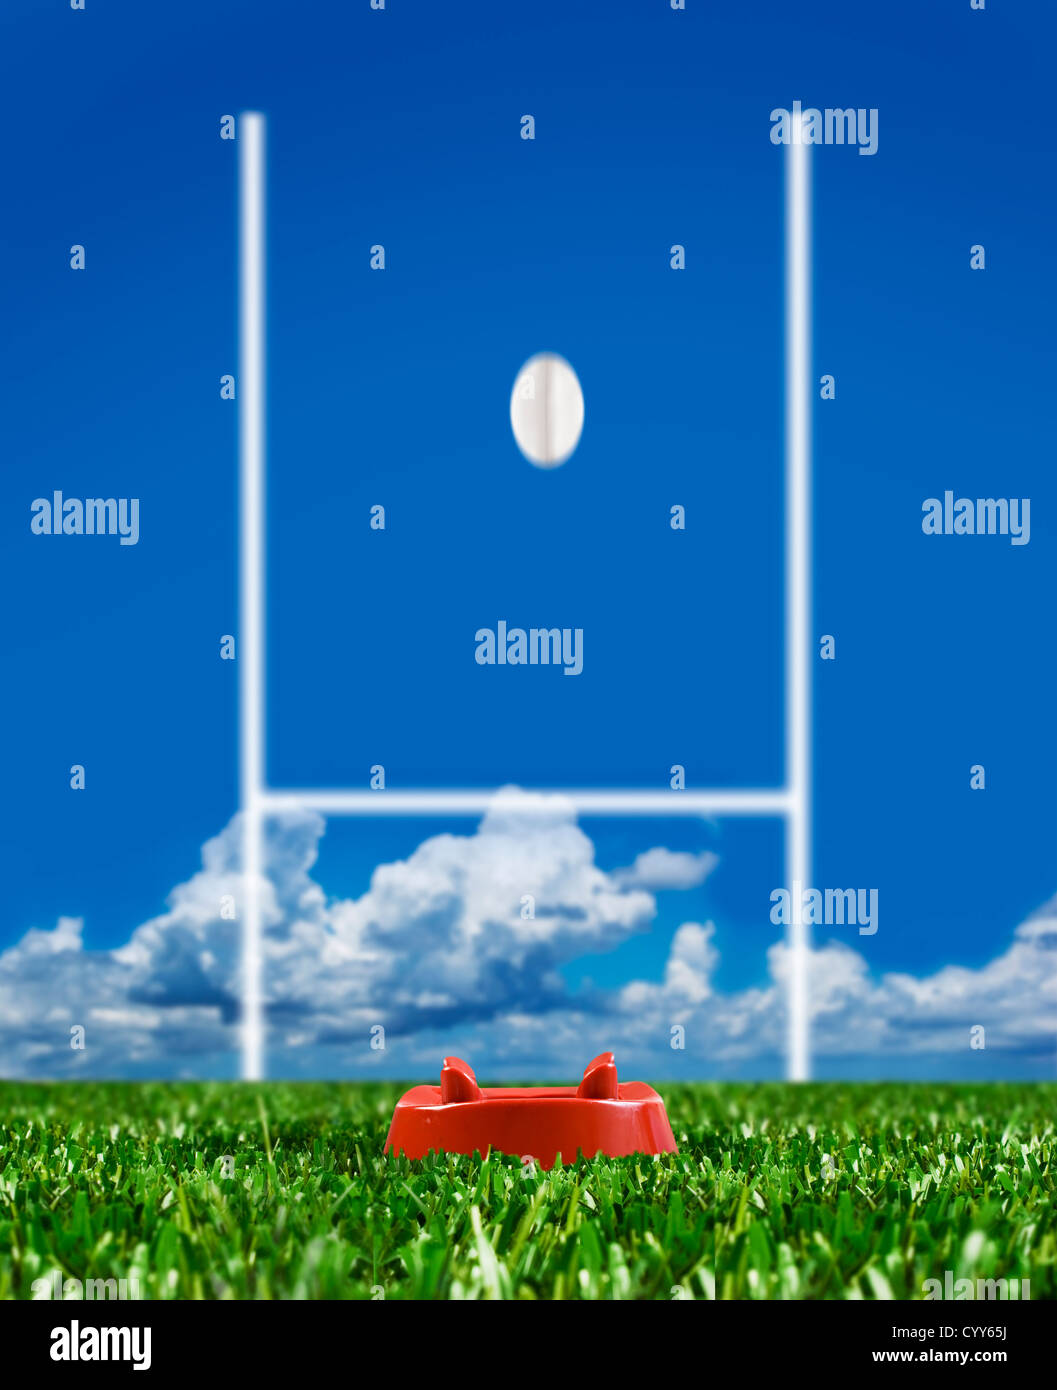 Rugby ball kicked to the posts on a rugby field showing movement - Stock Image